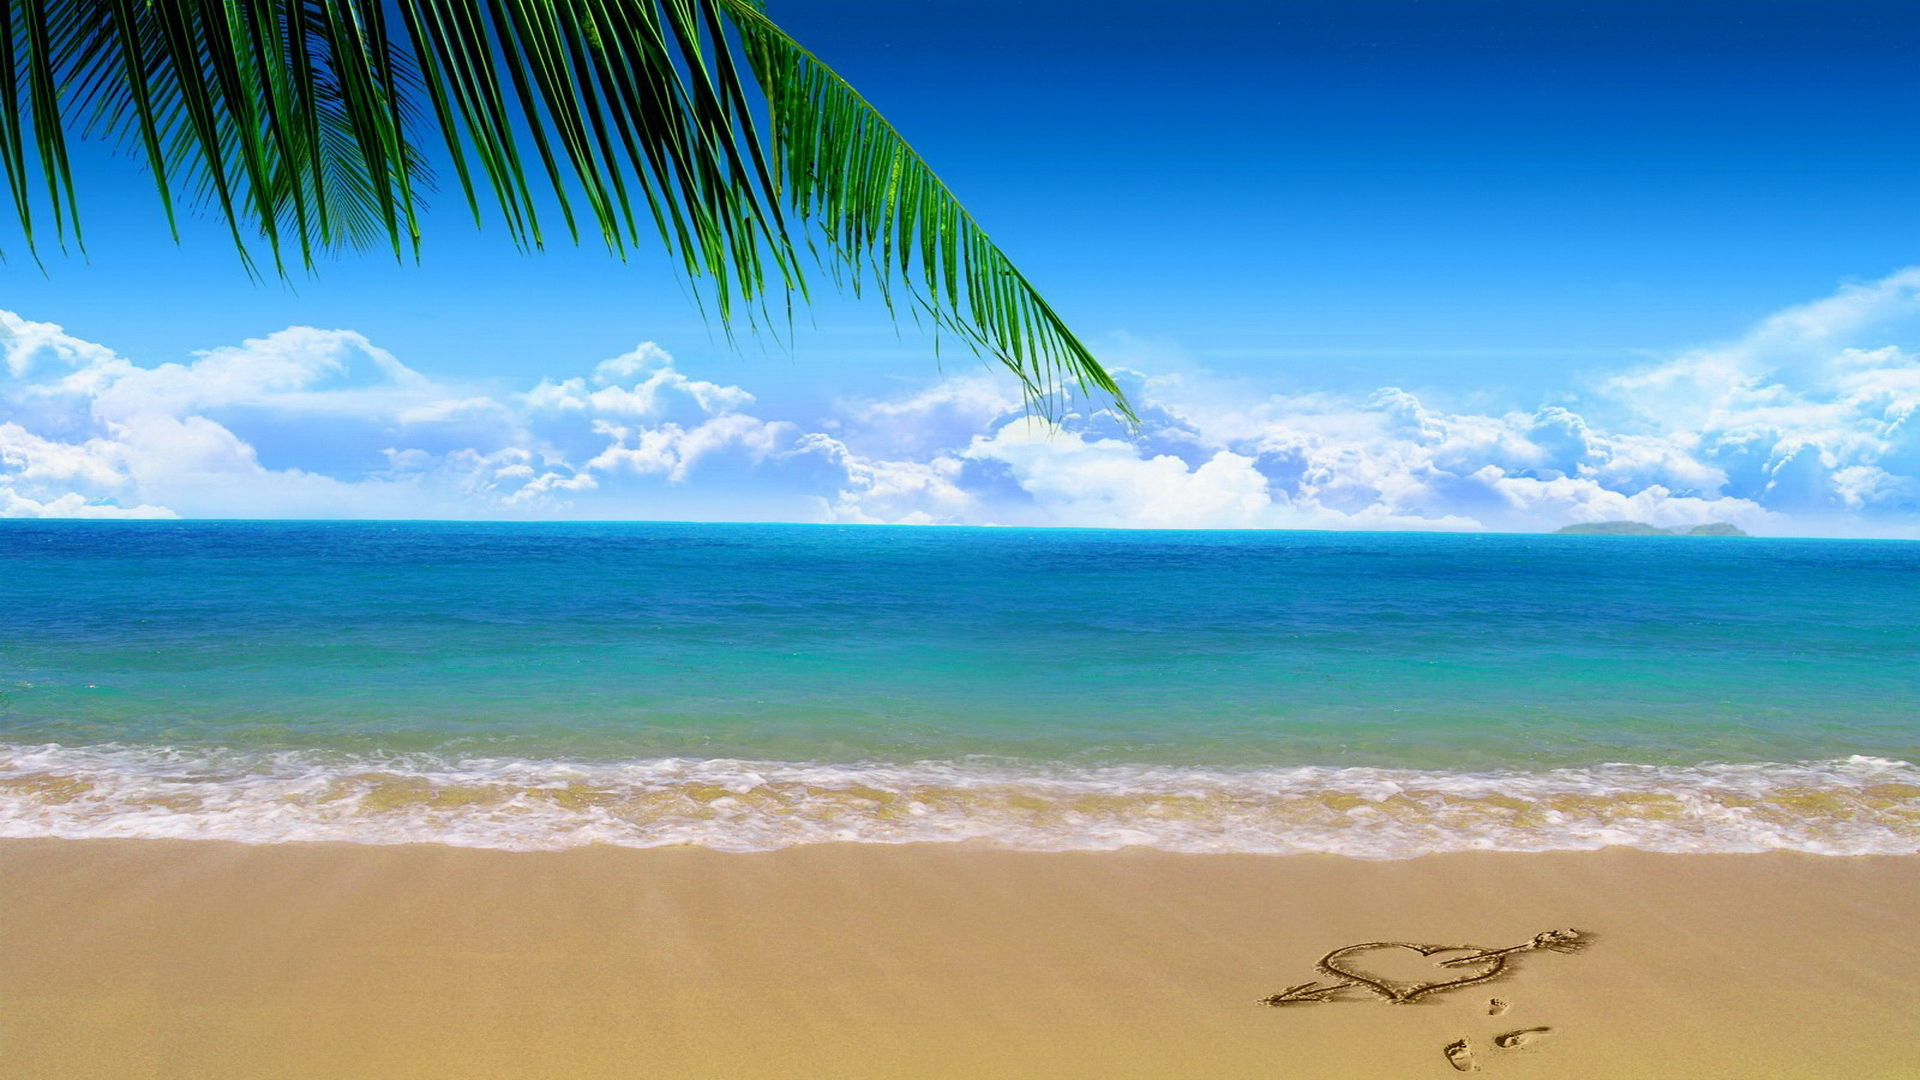 Sea Beach Wallpaper Hd Stoqk